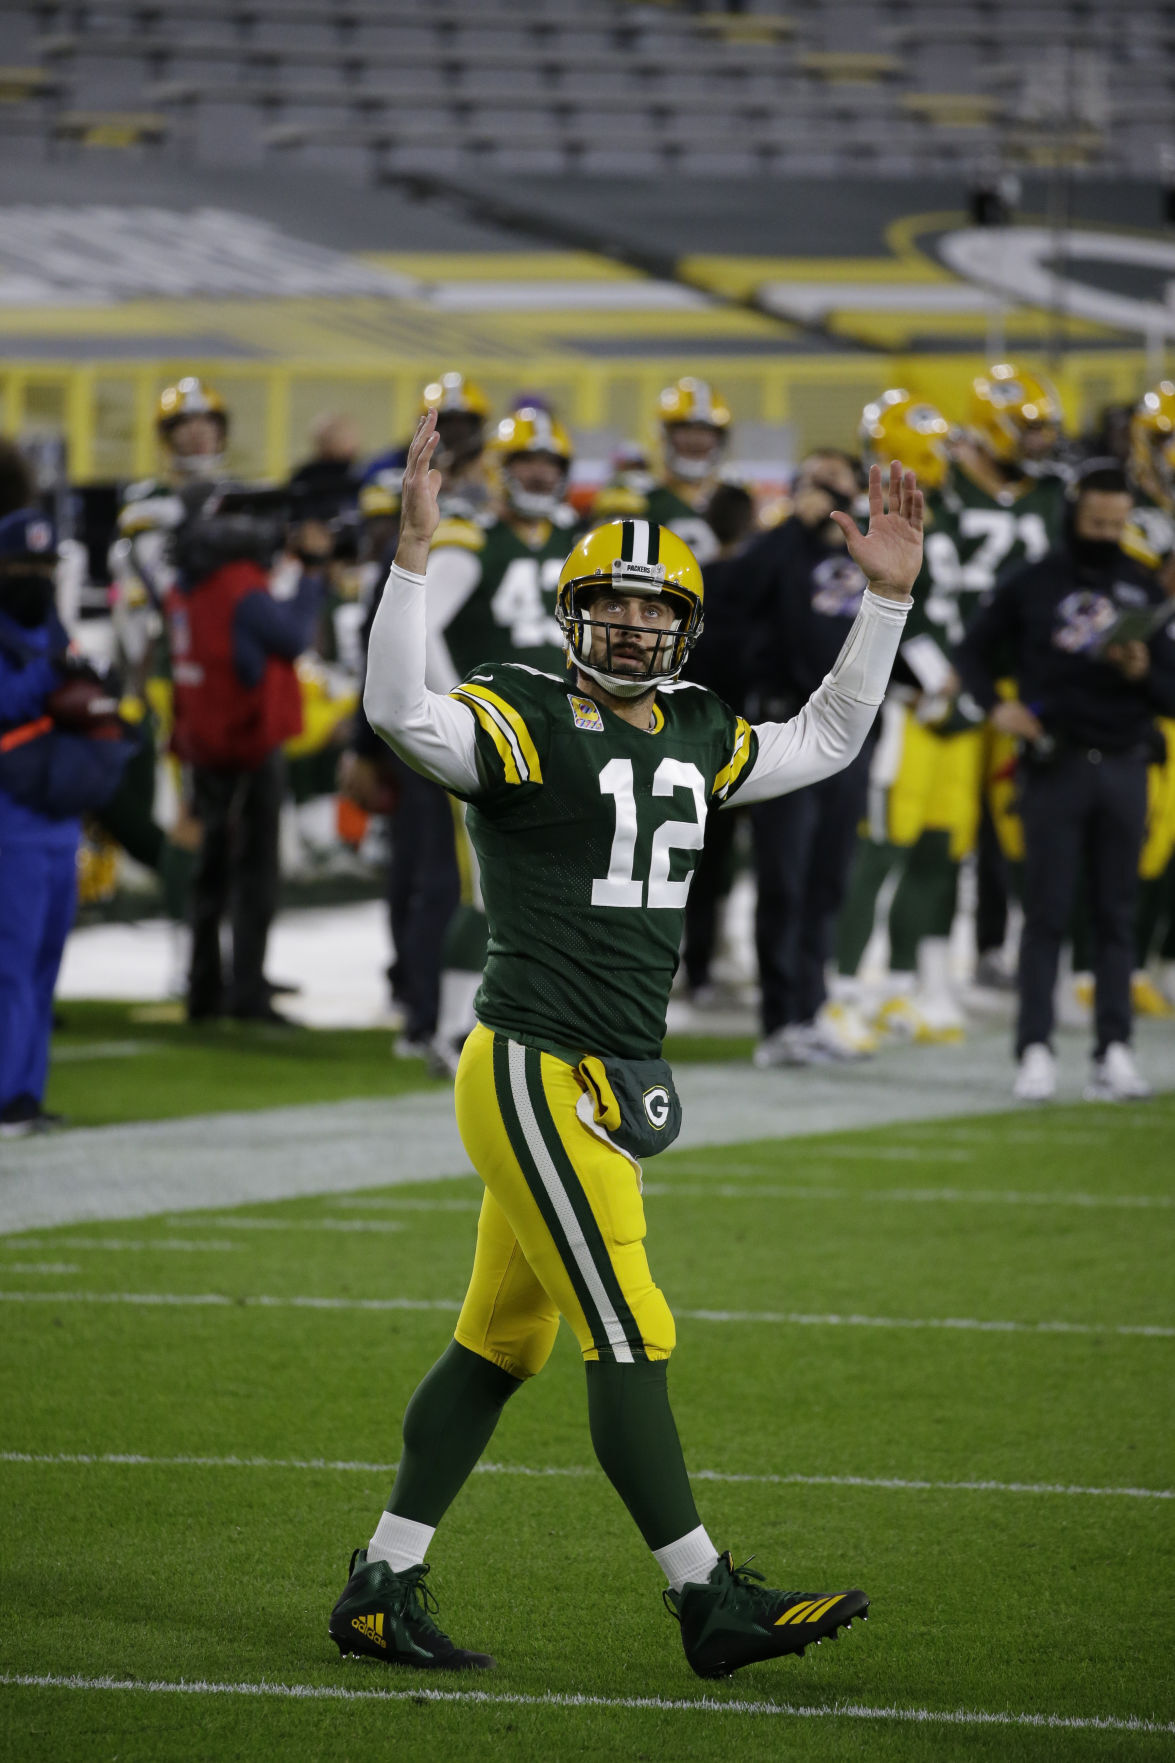 Packers cover image 10-7